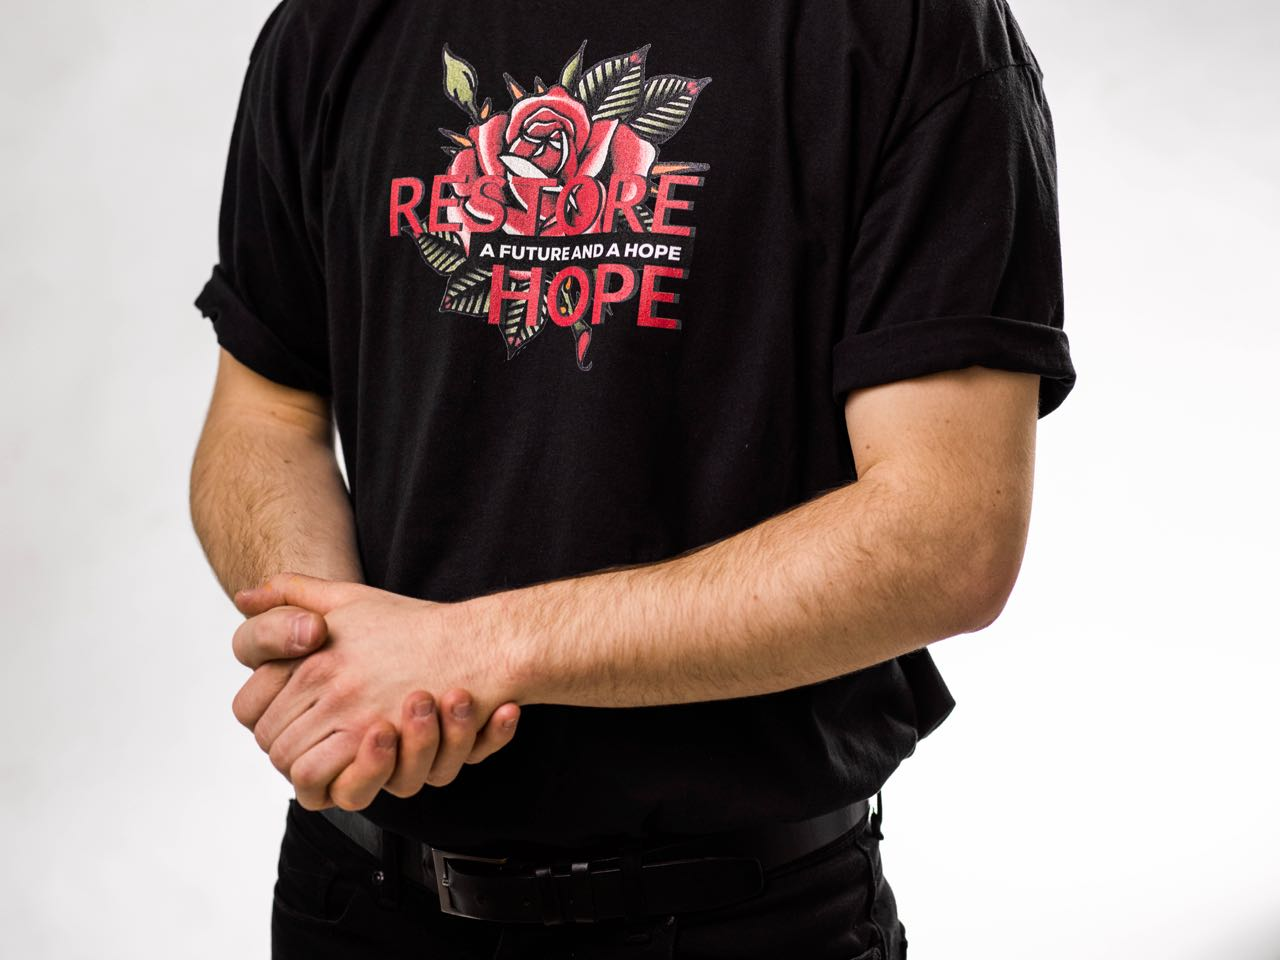 A Future And A Hope (Black T-Shirt)